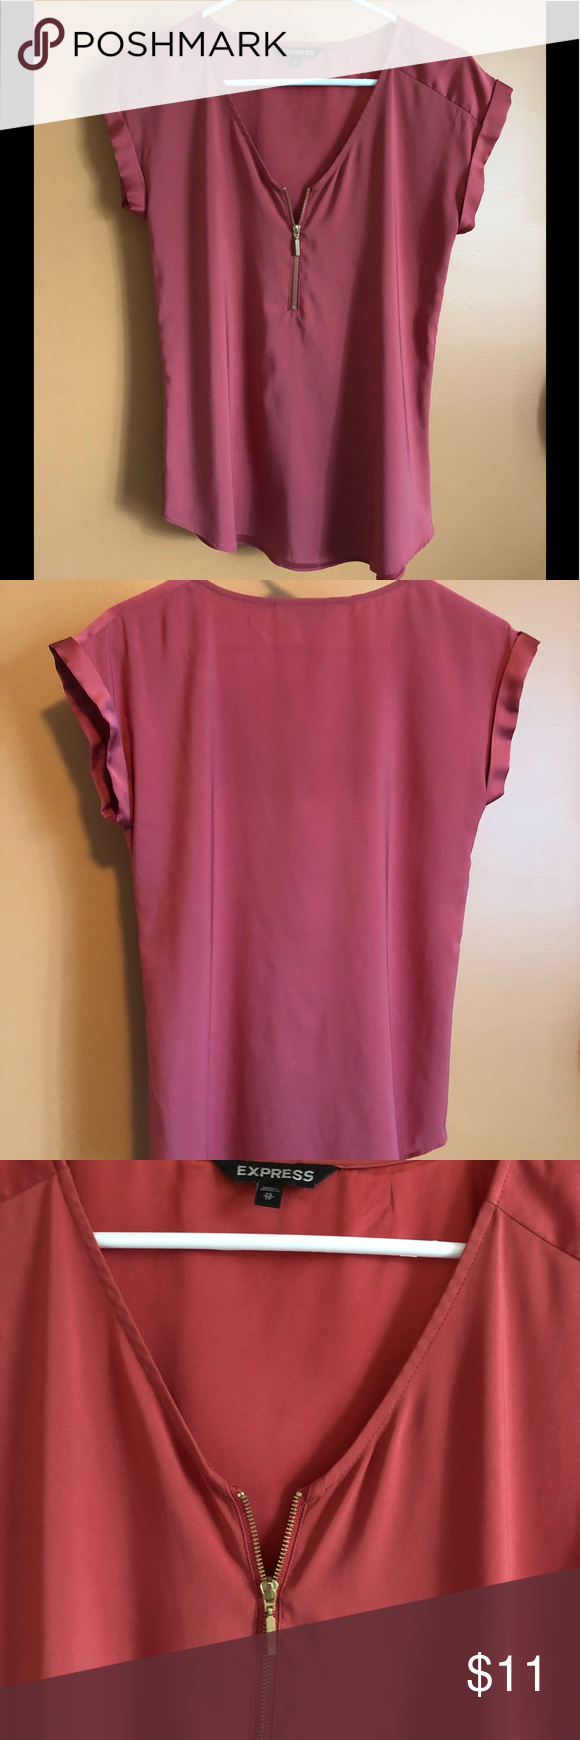 d8219580121 Gorgeous express top! Size XS comfortable dressy top from express ...